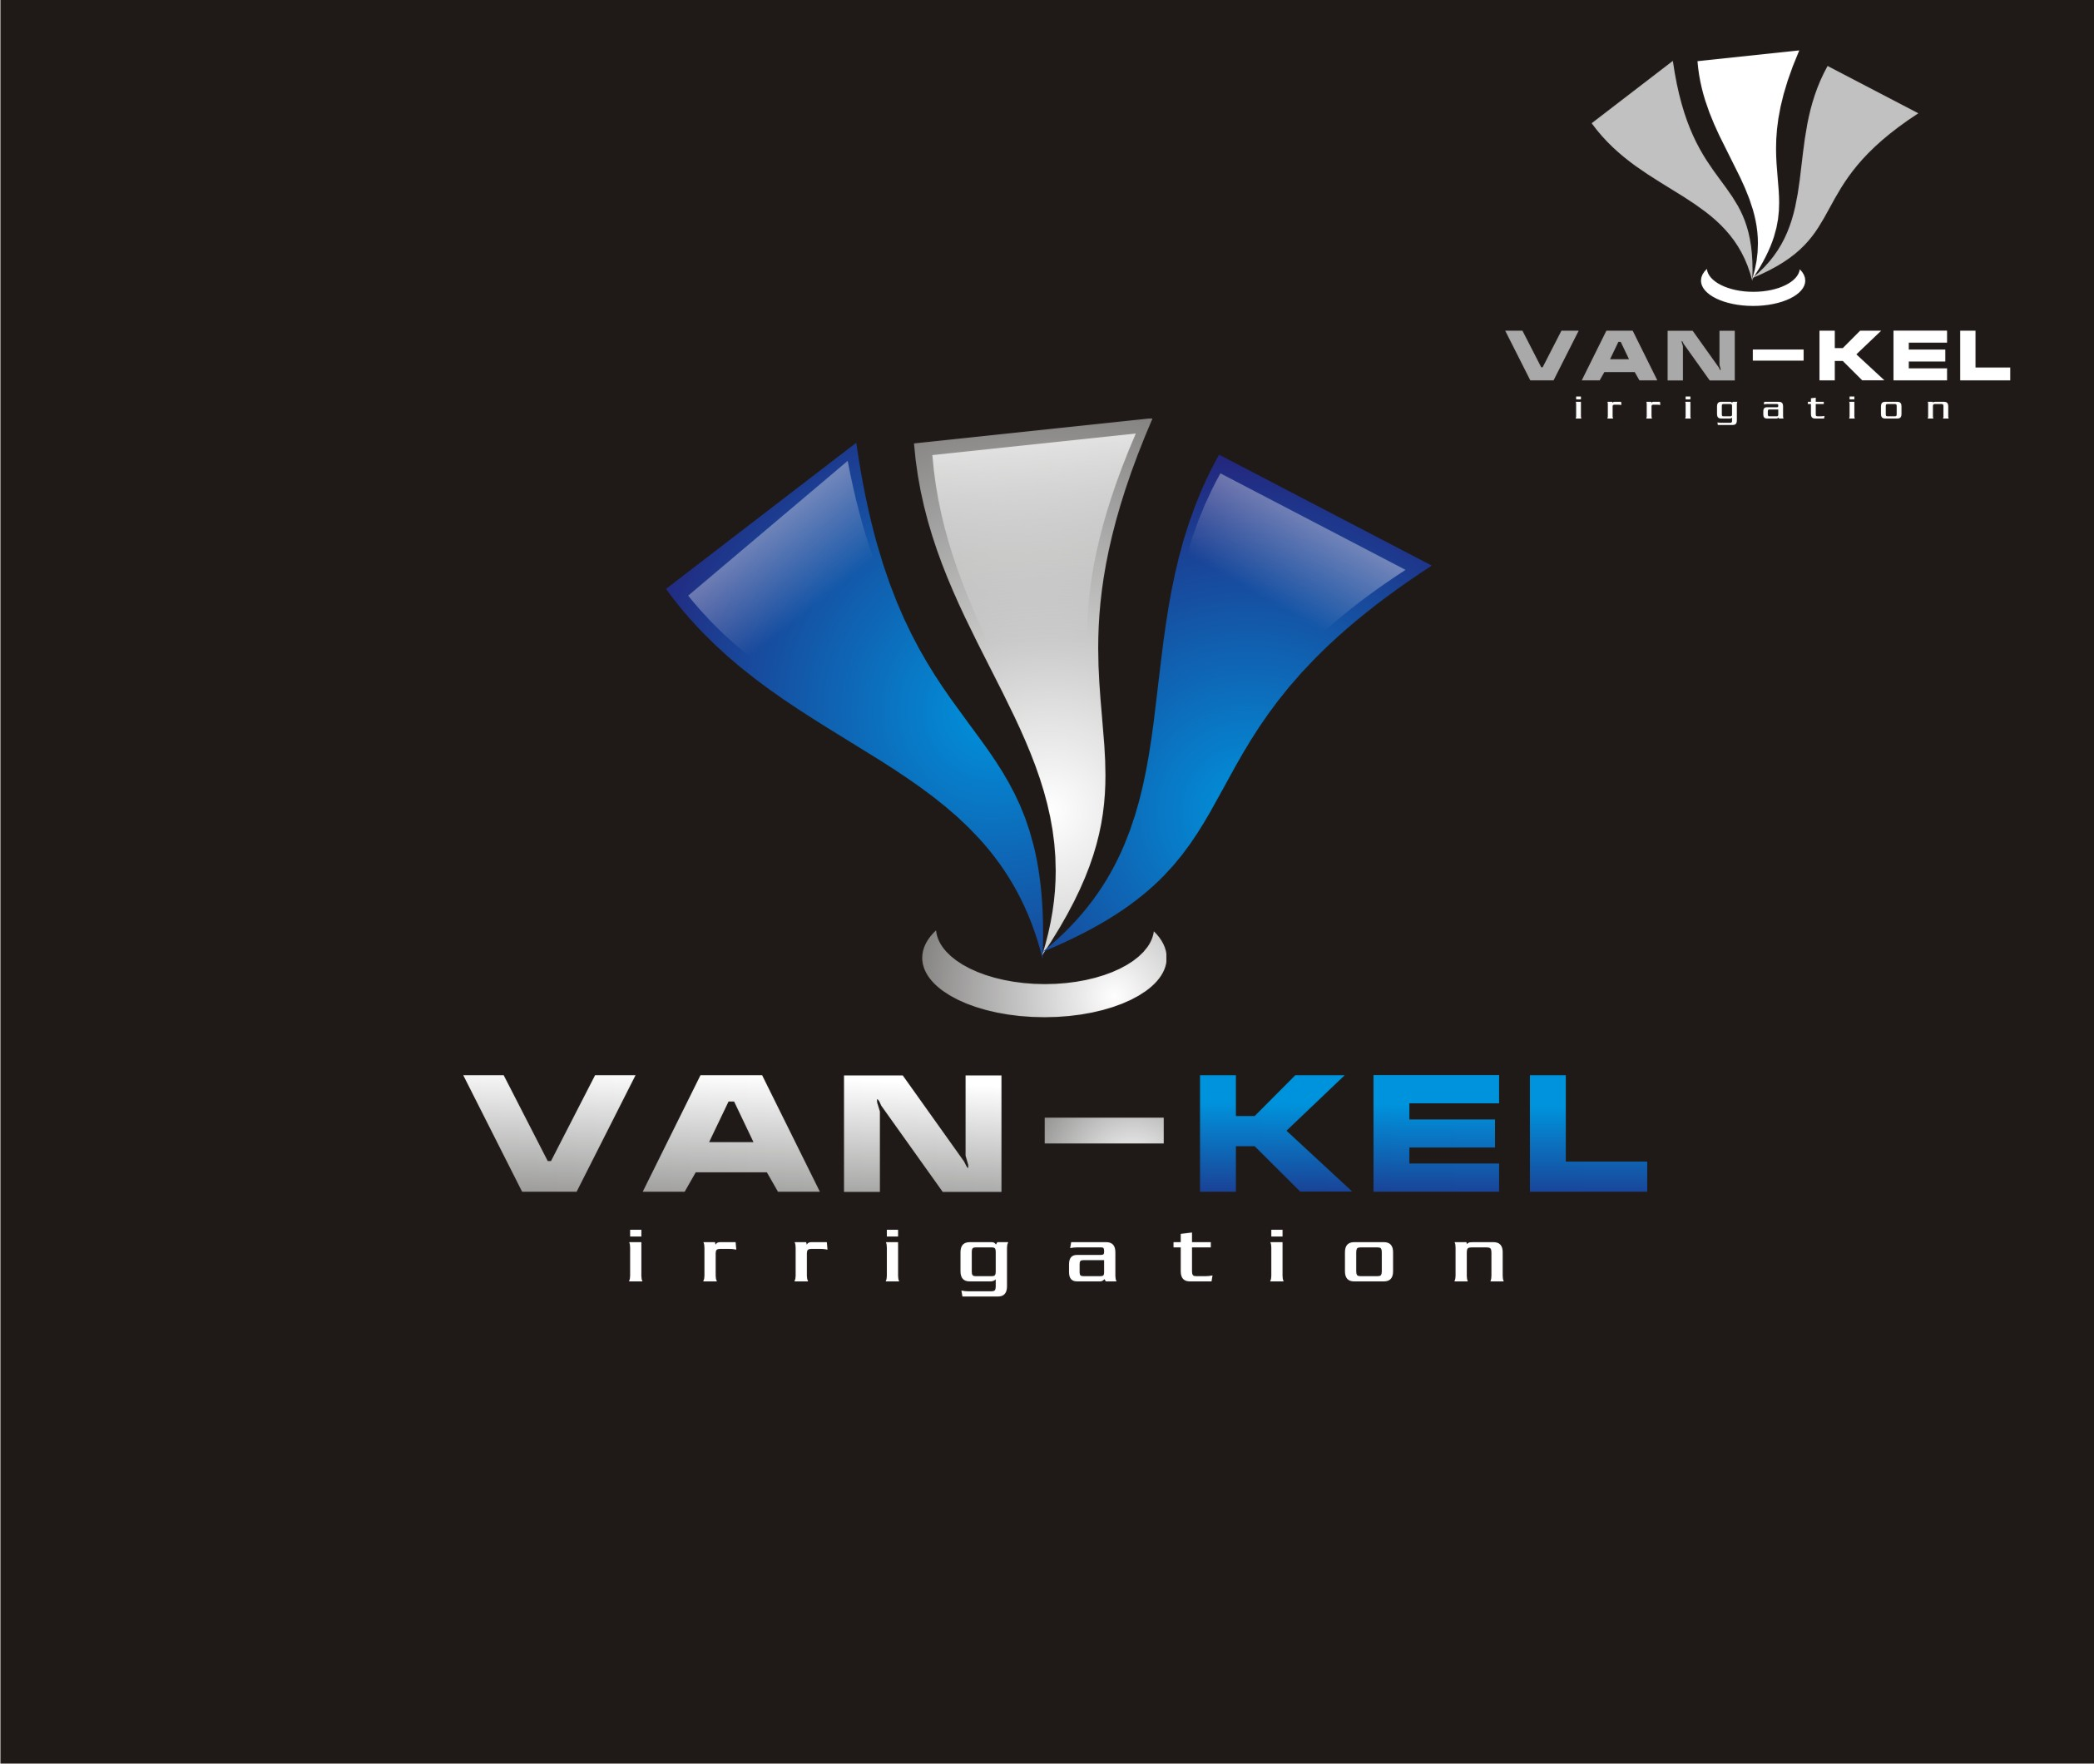 Logo Design by Felik Lahima Rahman - Entry No. 195 in the Logo Design Contest Van-Kel Irrigation Logo Design.